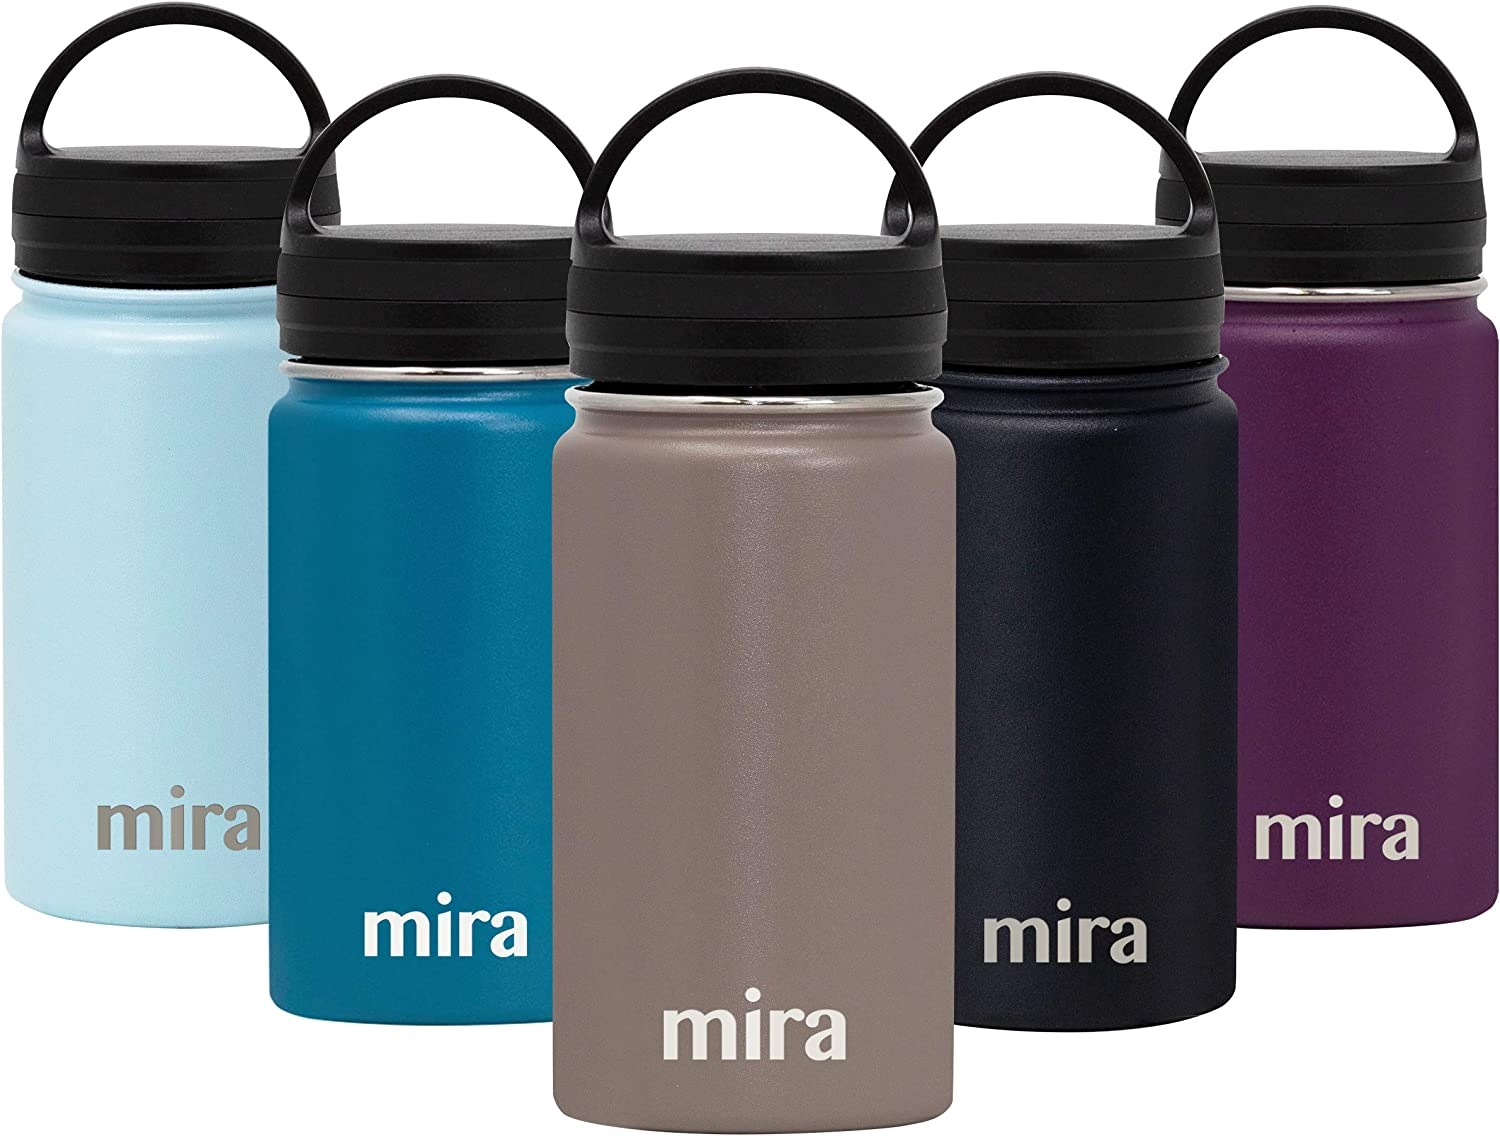 MIRA Stainless Steel Vacuum Insulated Wide Mouth Water Bottle - Thermos Flask Keeps Water Stay Cold for 24 hours, Hot for 12 hours - Hydro Metal Bottle BPA free cap - - Brown